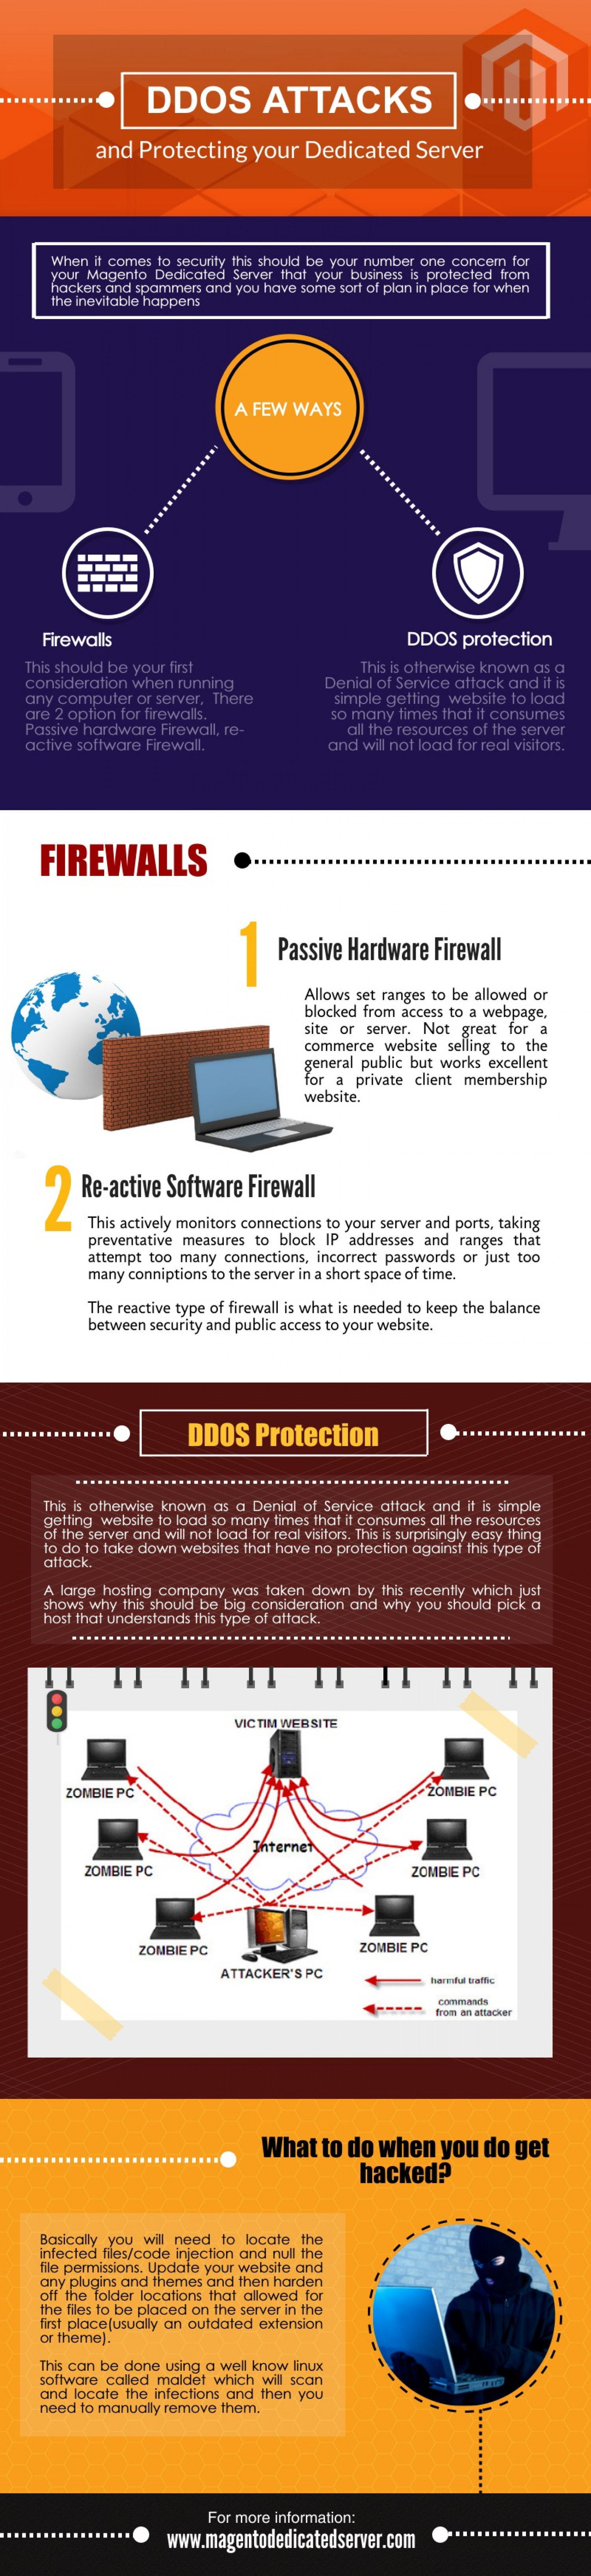 DDOS attacks and protecting your dedicated server Infographic